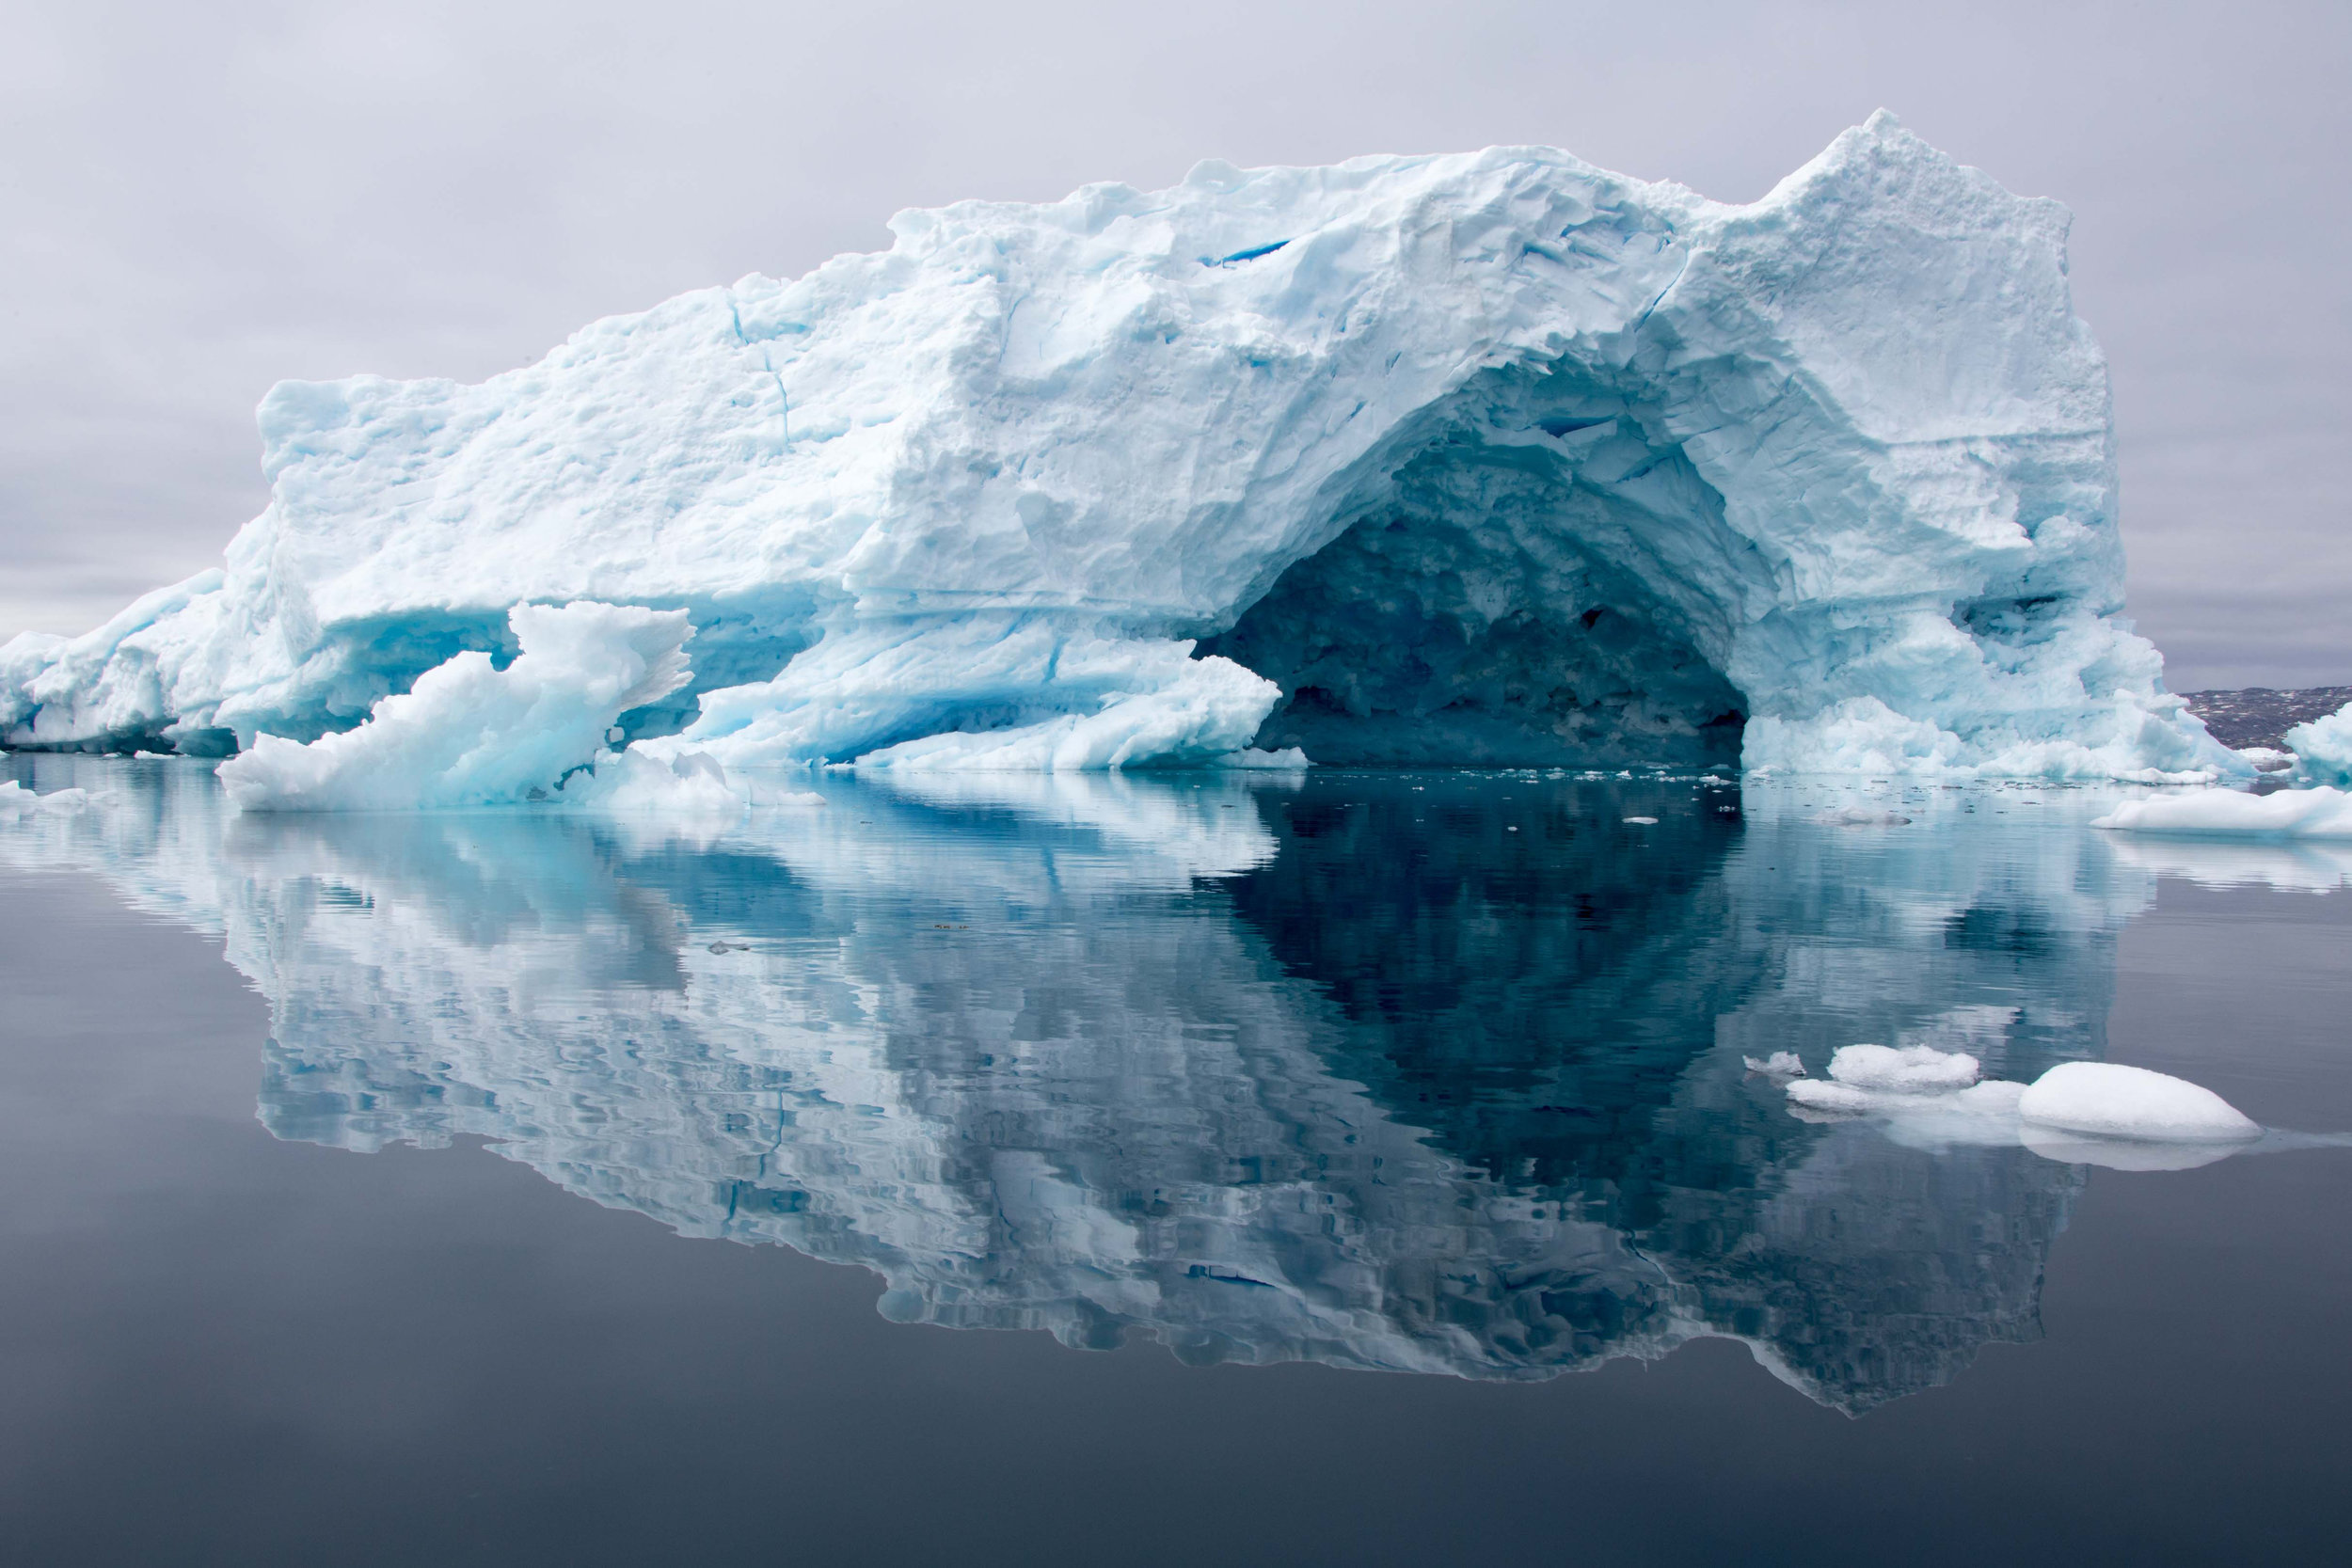 An ice cave formed within an iceberg on the ice fjord in Tinit, Greenland.